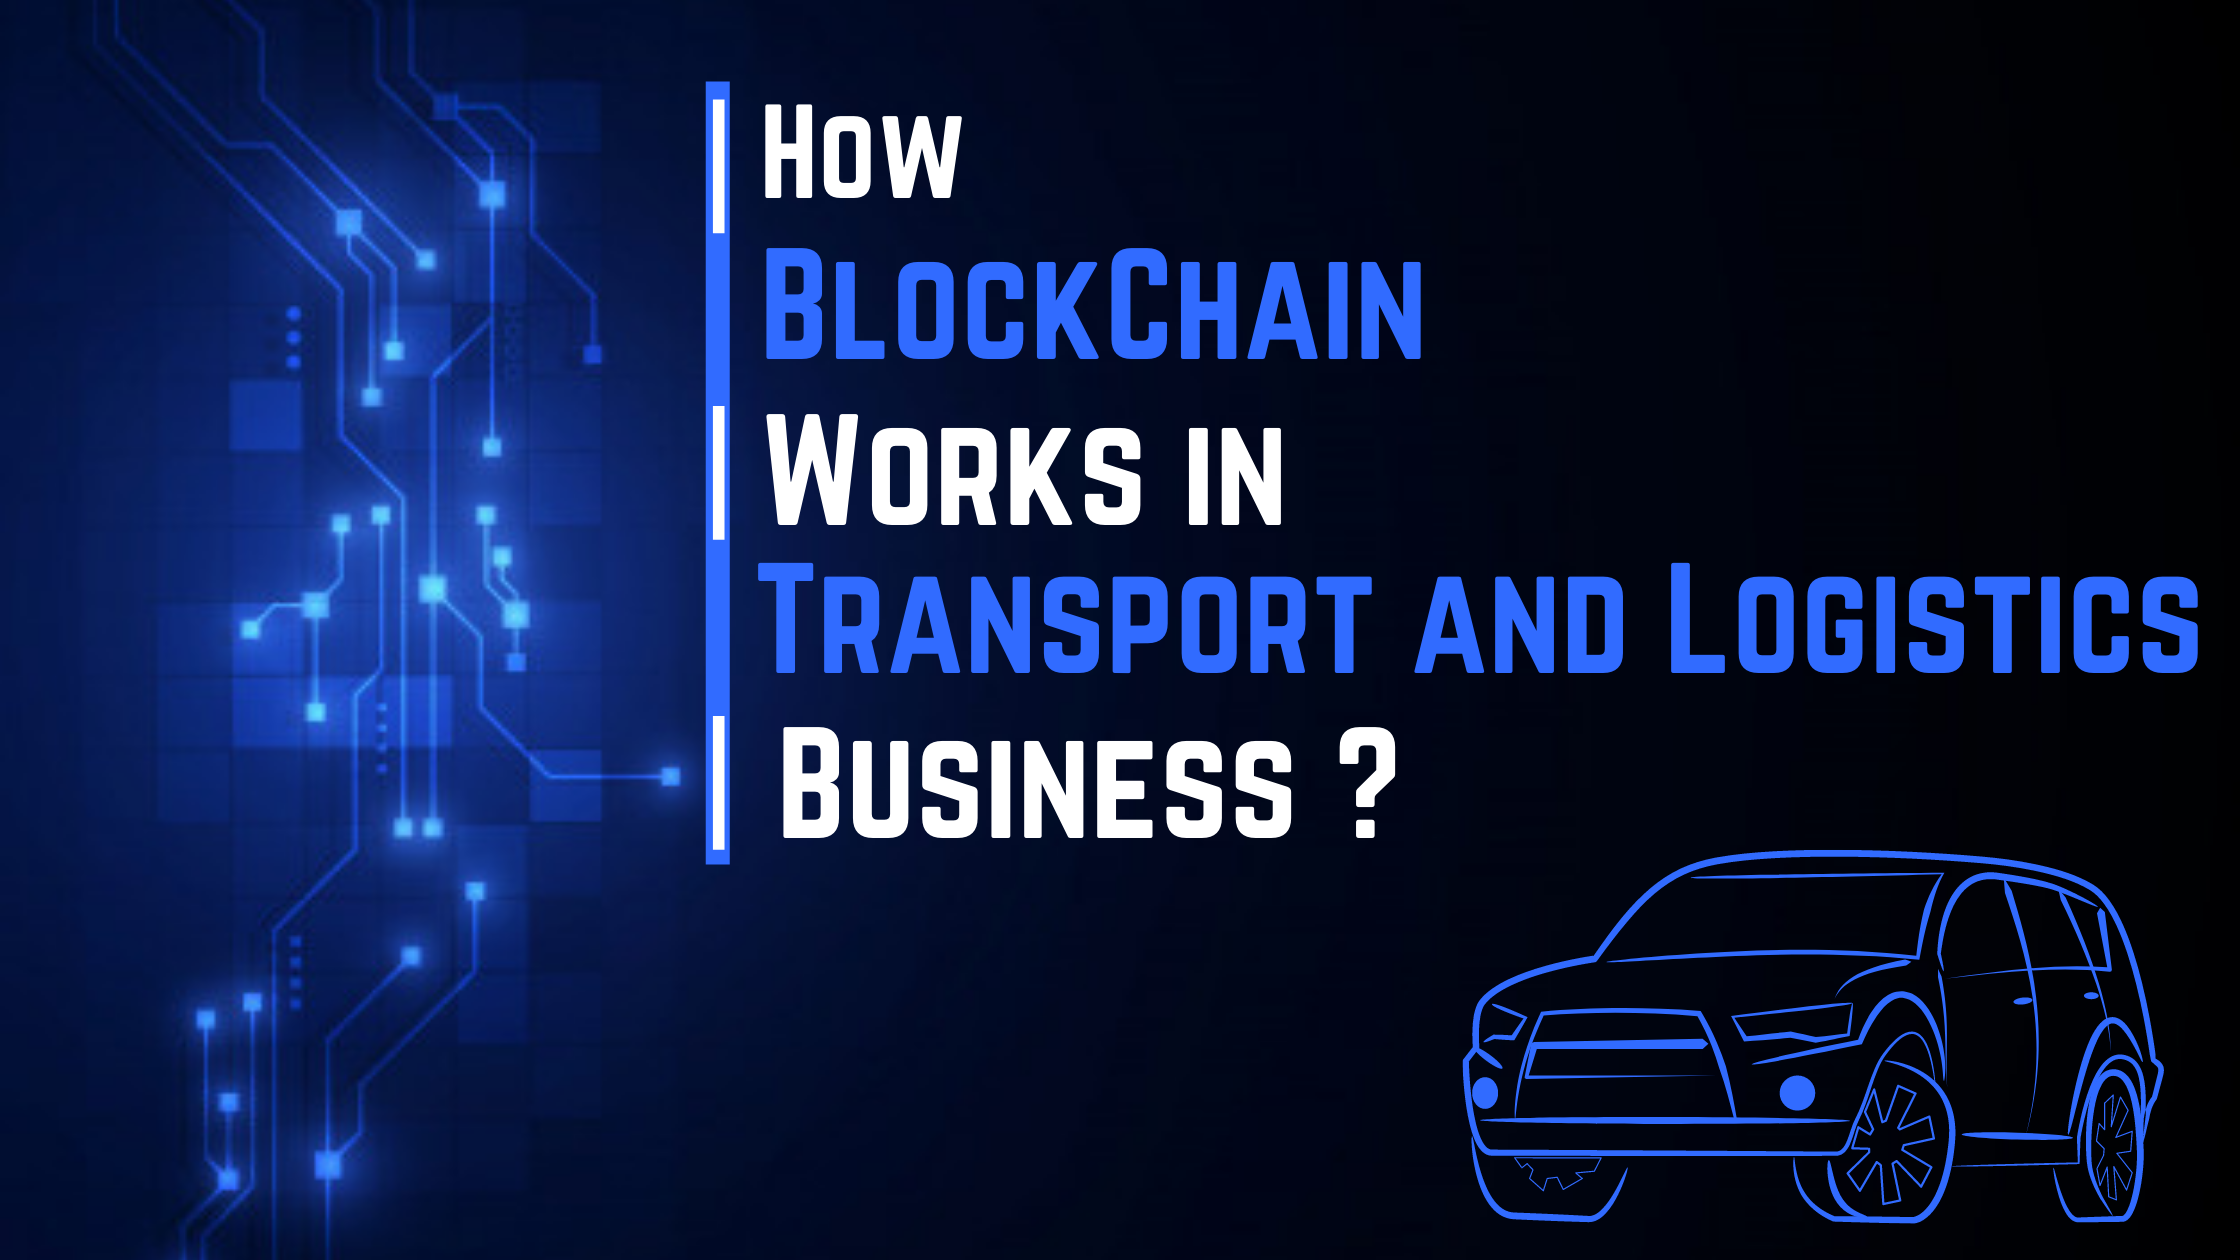 How Blockchain Works in Transport and Logistics Business